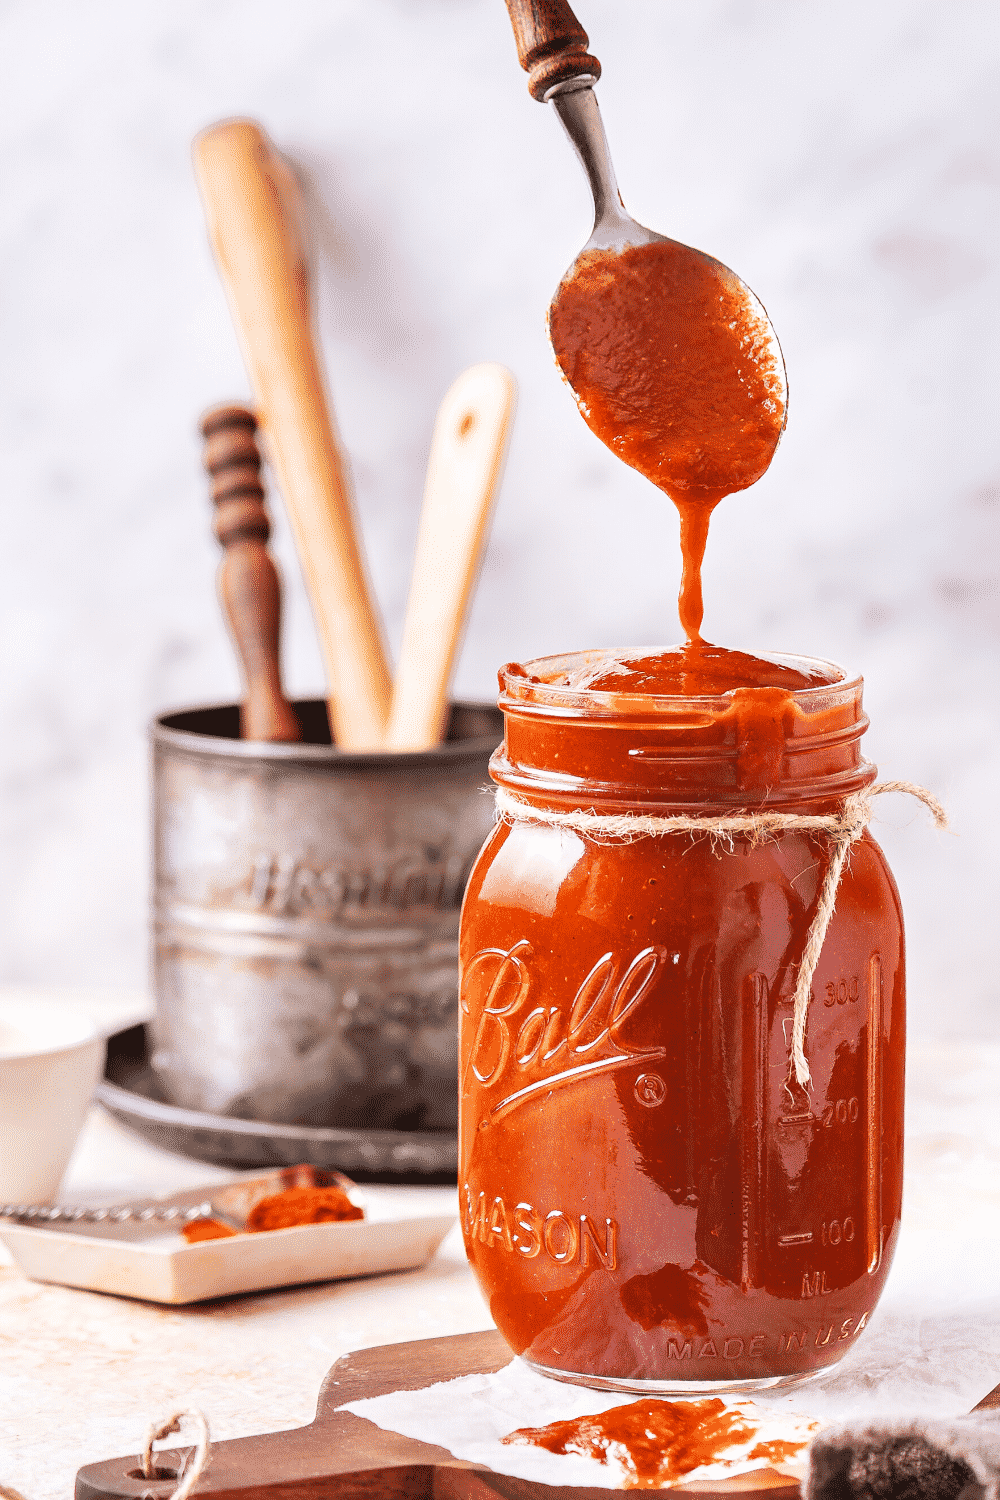 A glass jar filled to the top with BBQ sauce. A spoon is hovering over the jar dripping barbecue sauce down from it into the top of the jar.